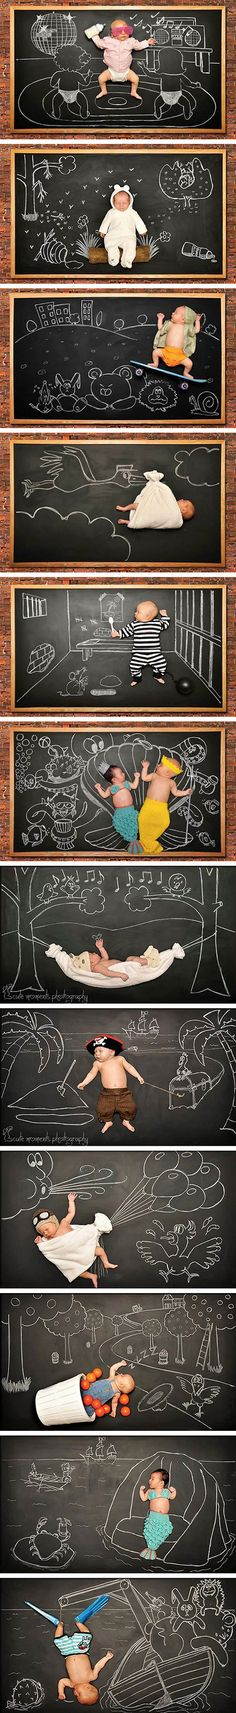 Chalkboard baby photos - I love this